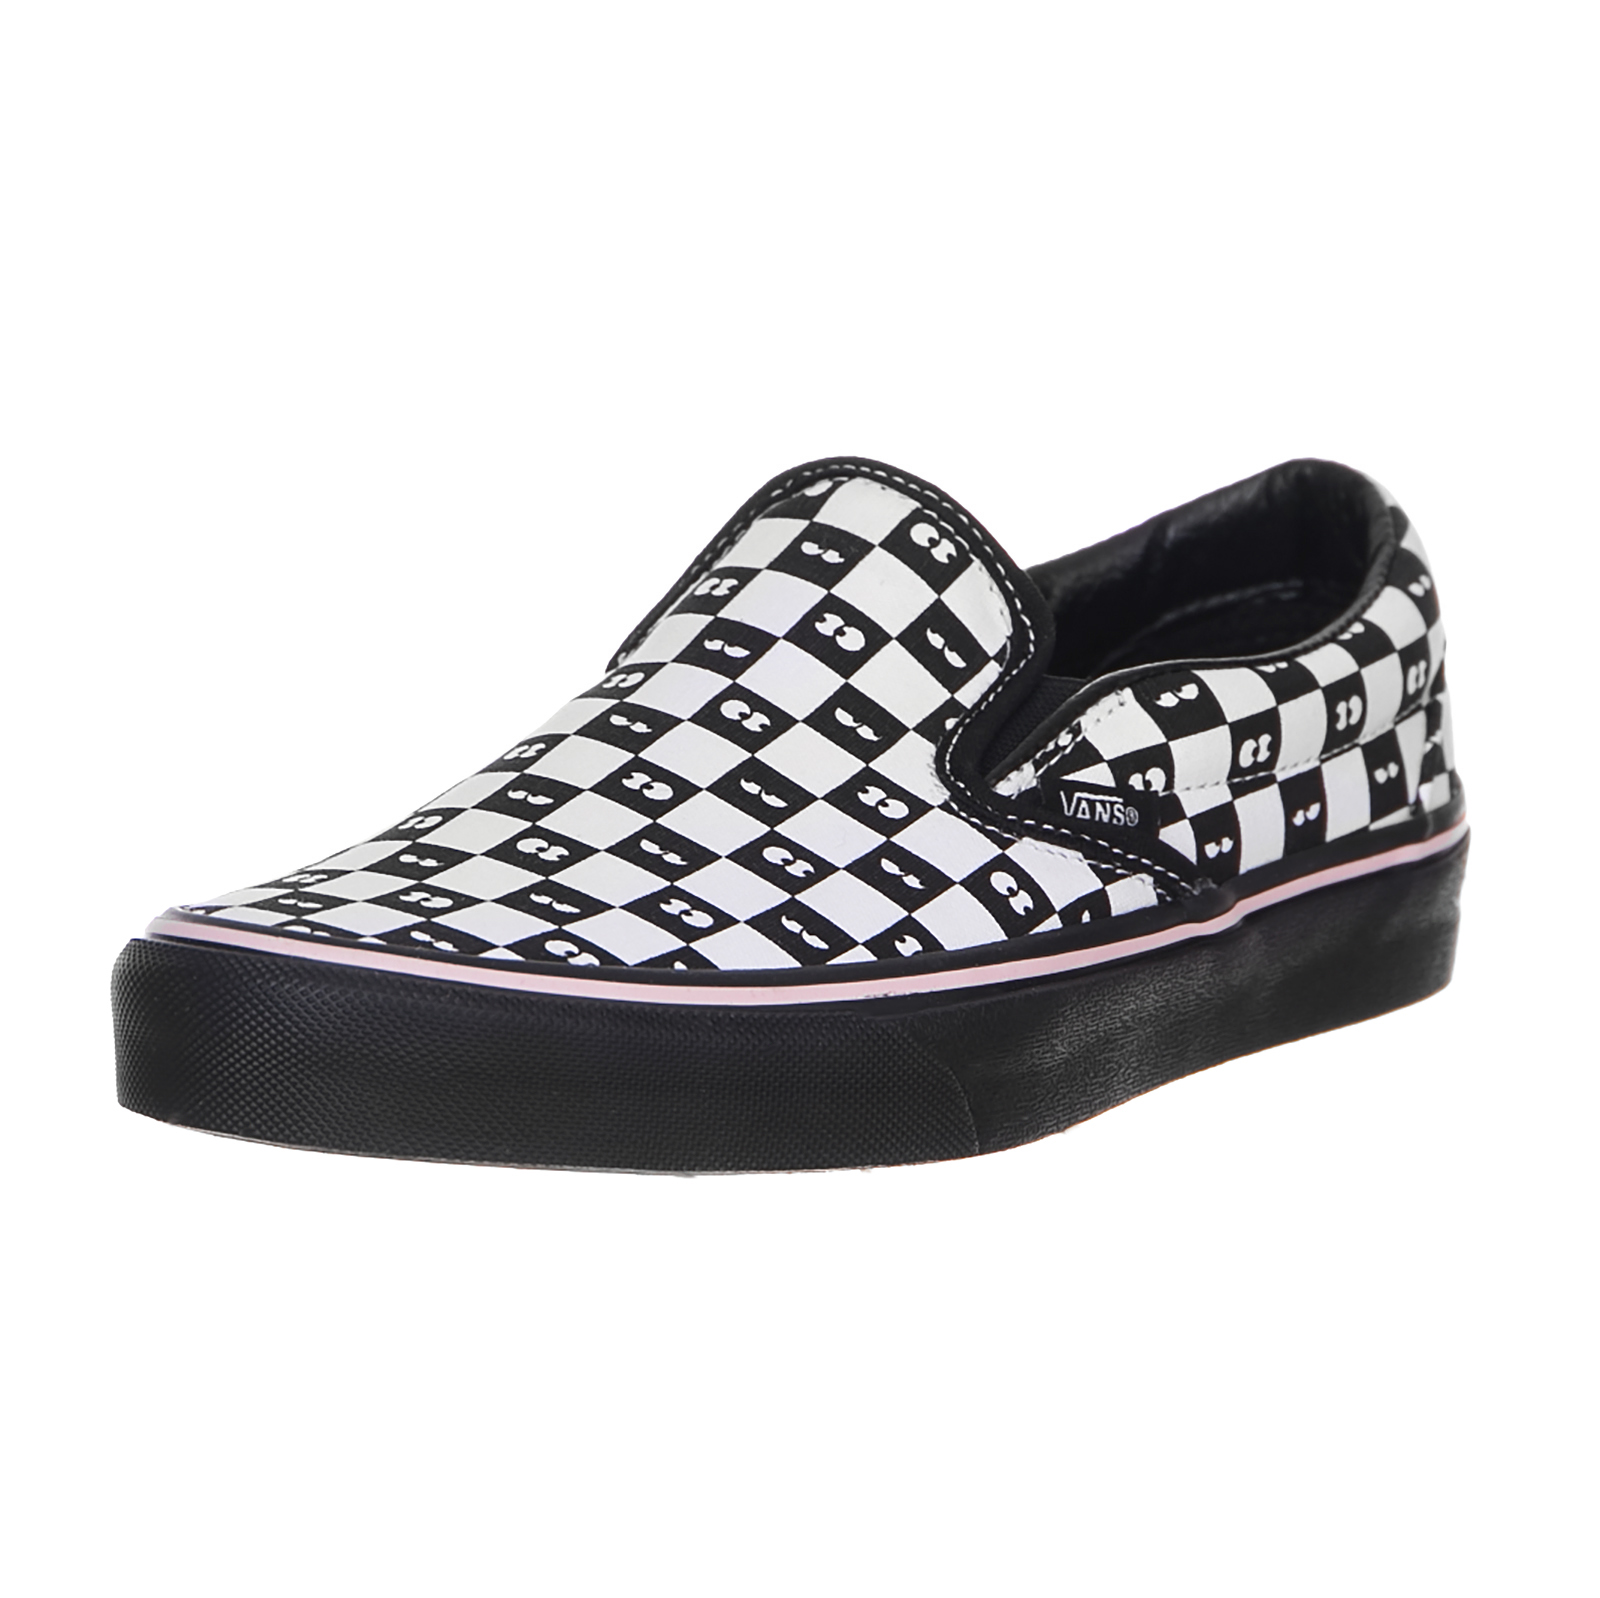 Vans Sneakers Classic Slip-On Lazy Oaf, Checkerboard/Black Multicolor